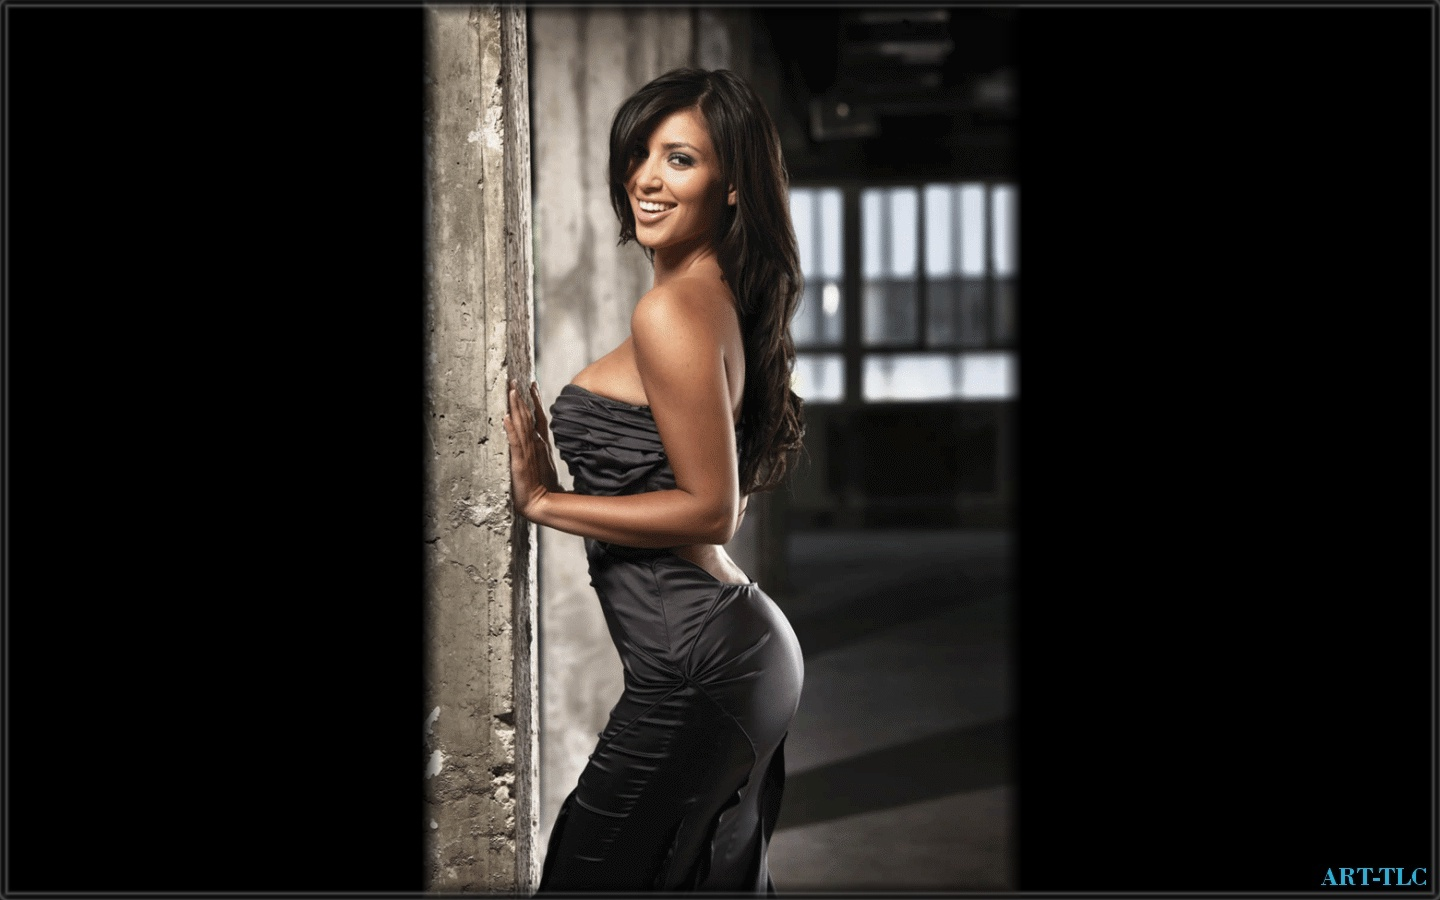 Kim Kardashian wallpaper 2012